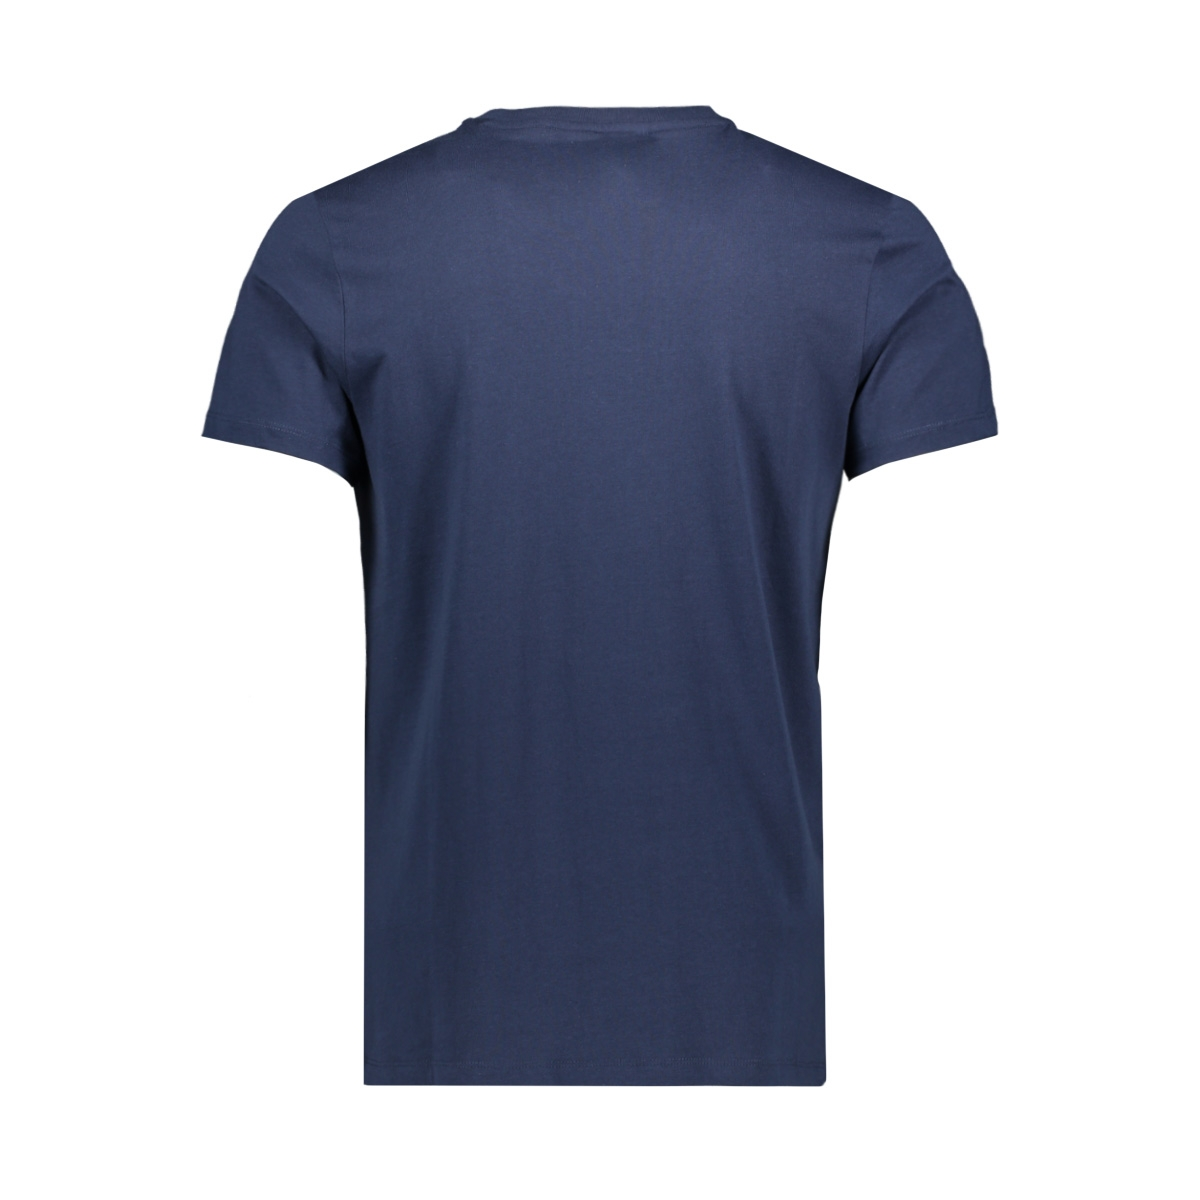 recharge ts 45170 cars t-shirt 12 navy